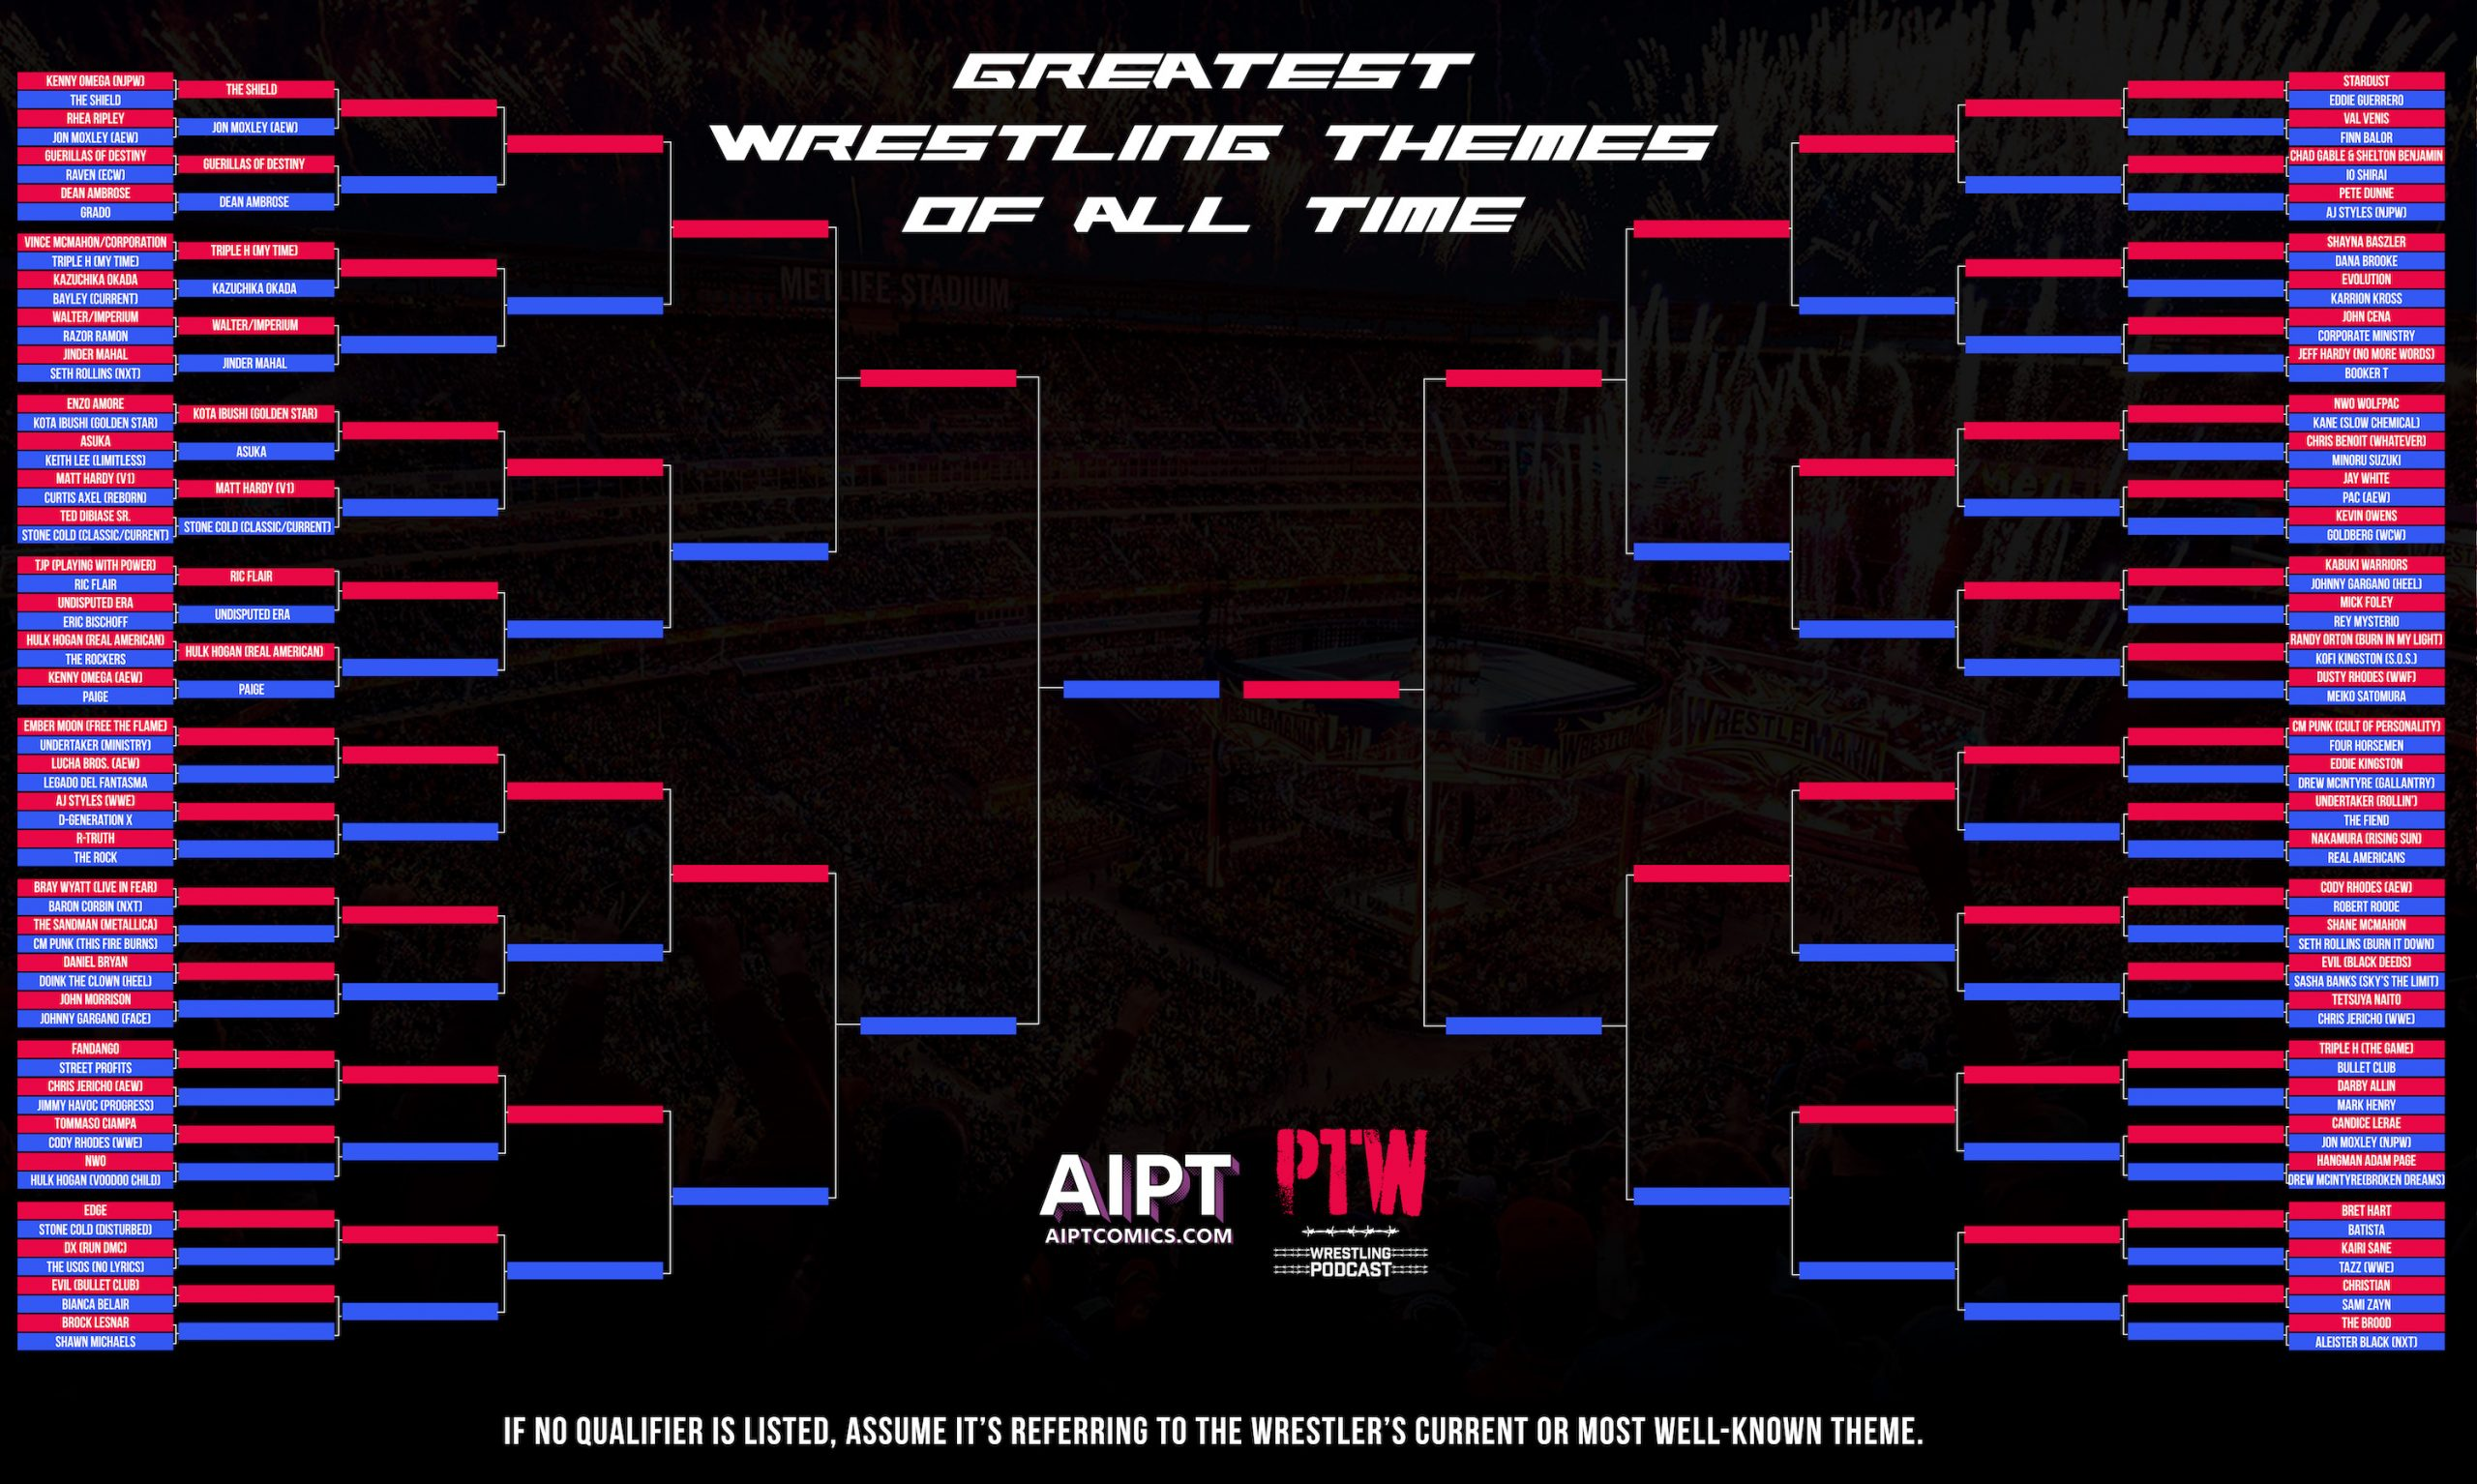 The Greatest Wrestling Themes of All Time: Round 1 A results